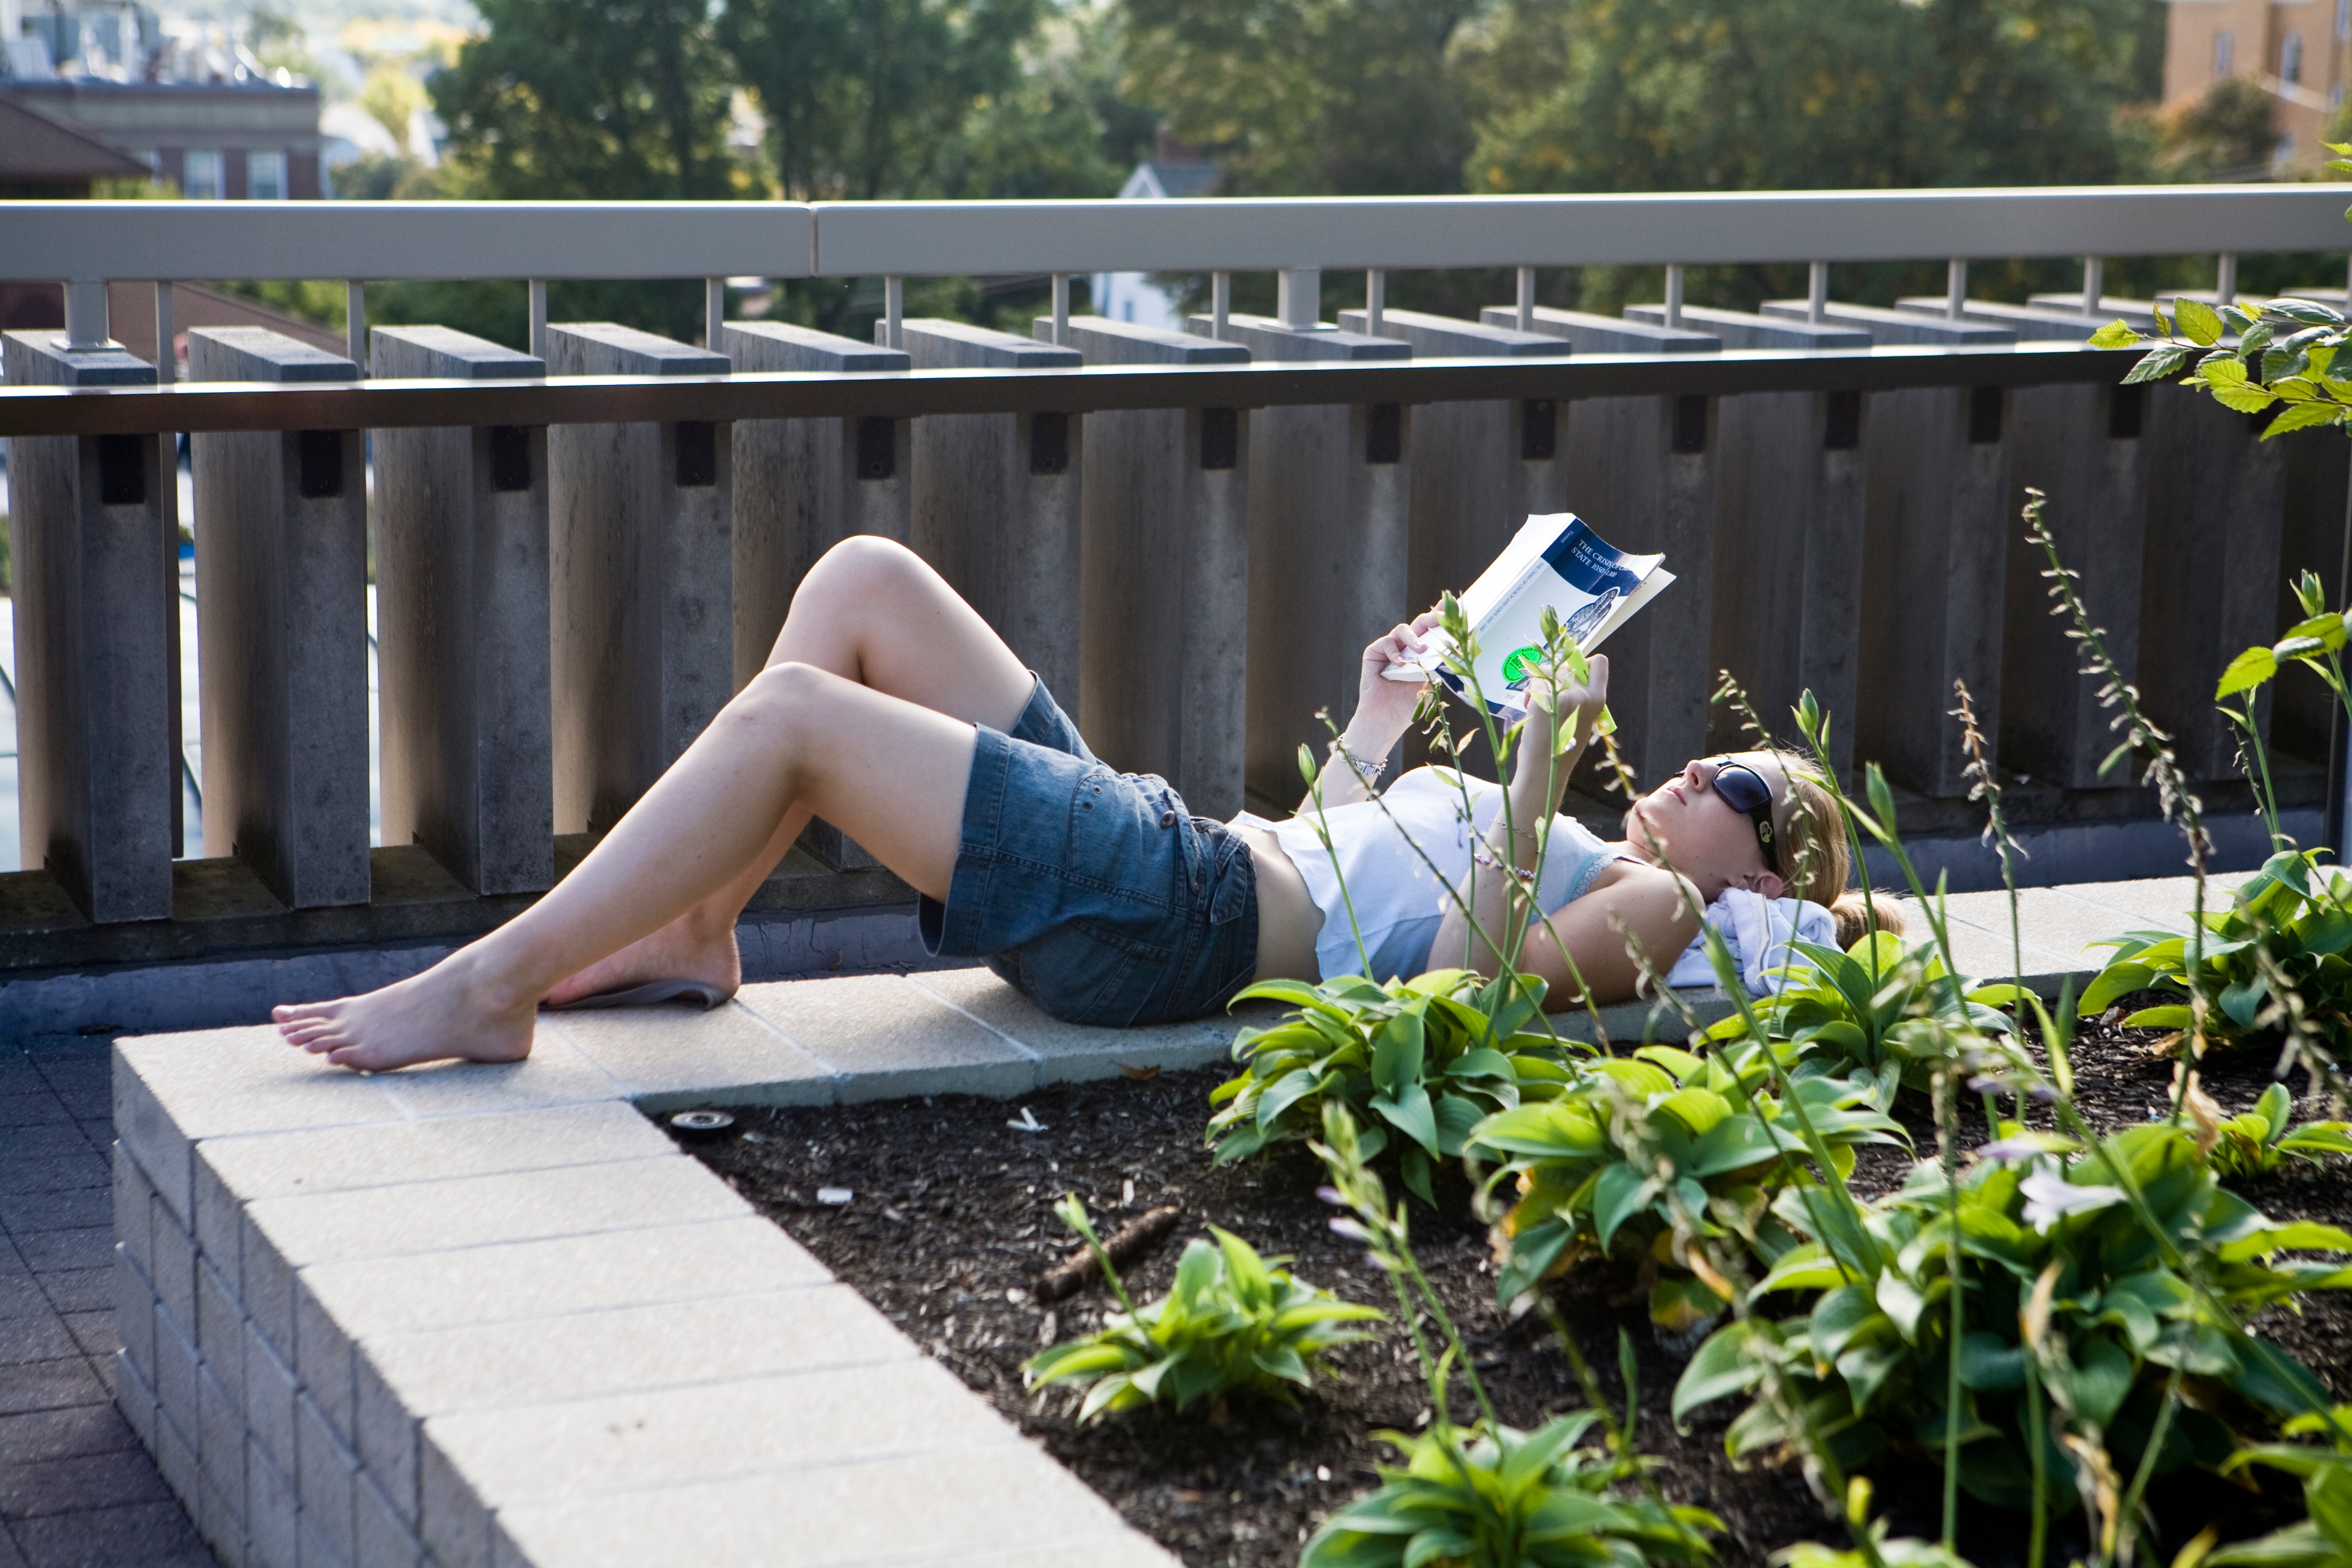 Summer-Relaxing-at-Tufts-University.jpg